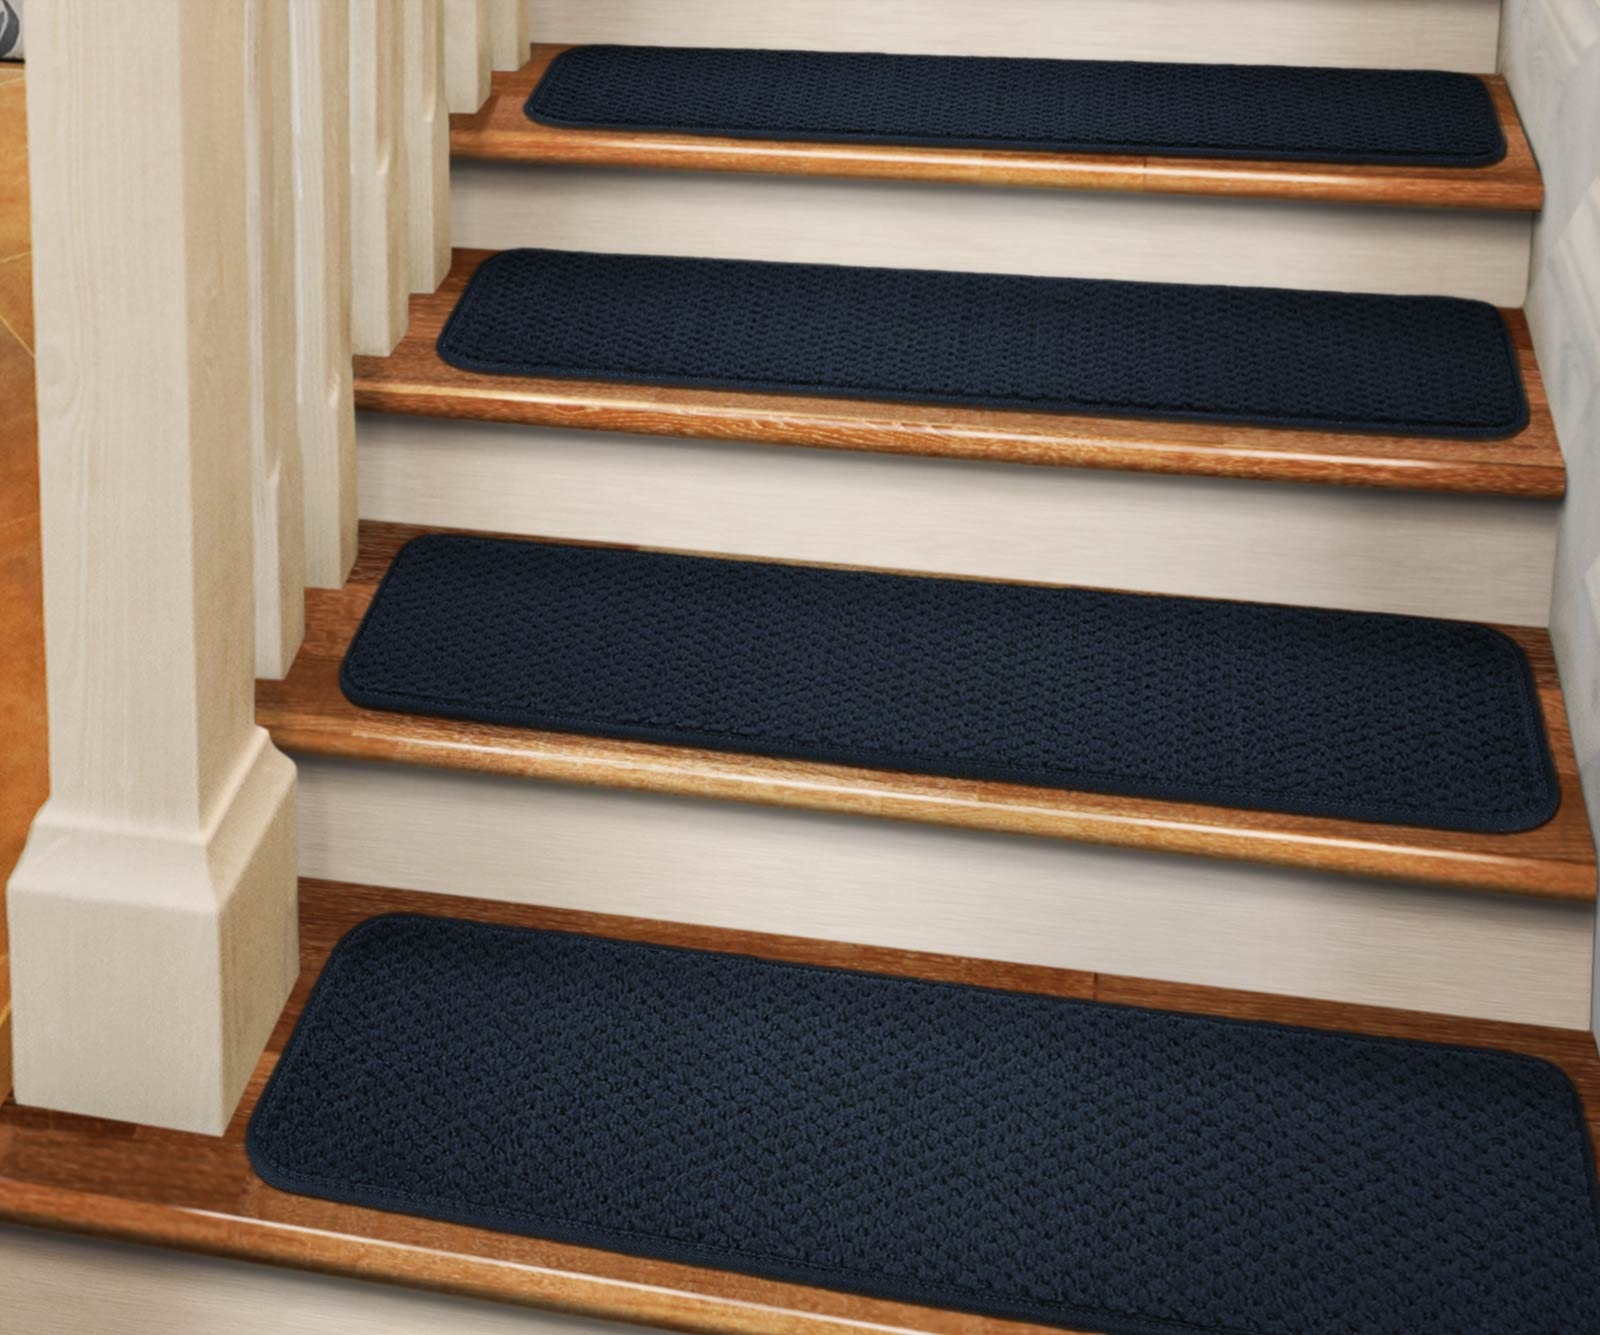 Set Of 12 Adhesive Carpet Stair Treads Navy Blue 8 In X 23 5   Navy Blue Stair Treads   Wayfair   Non Slip   Longshore Tides   Rug Stair   Stair Runners